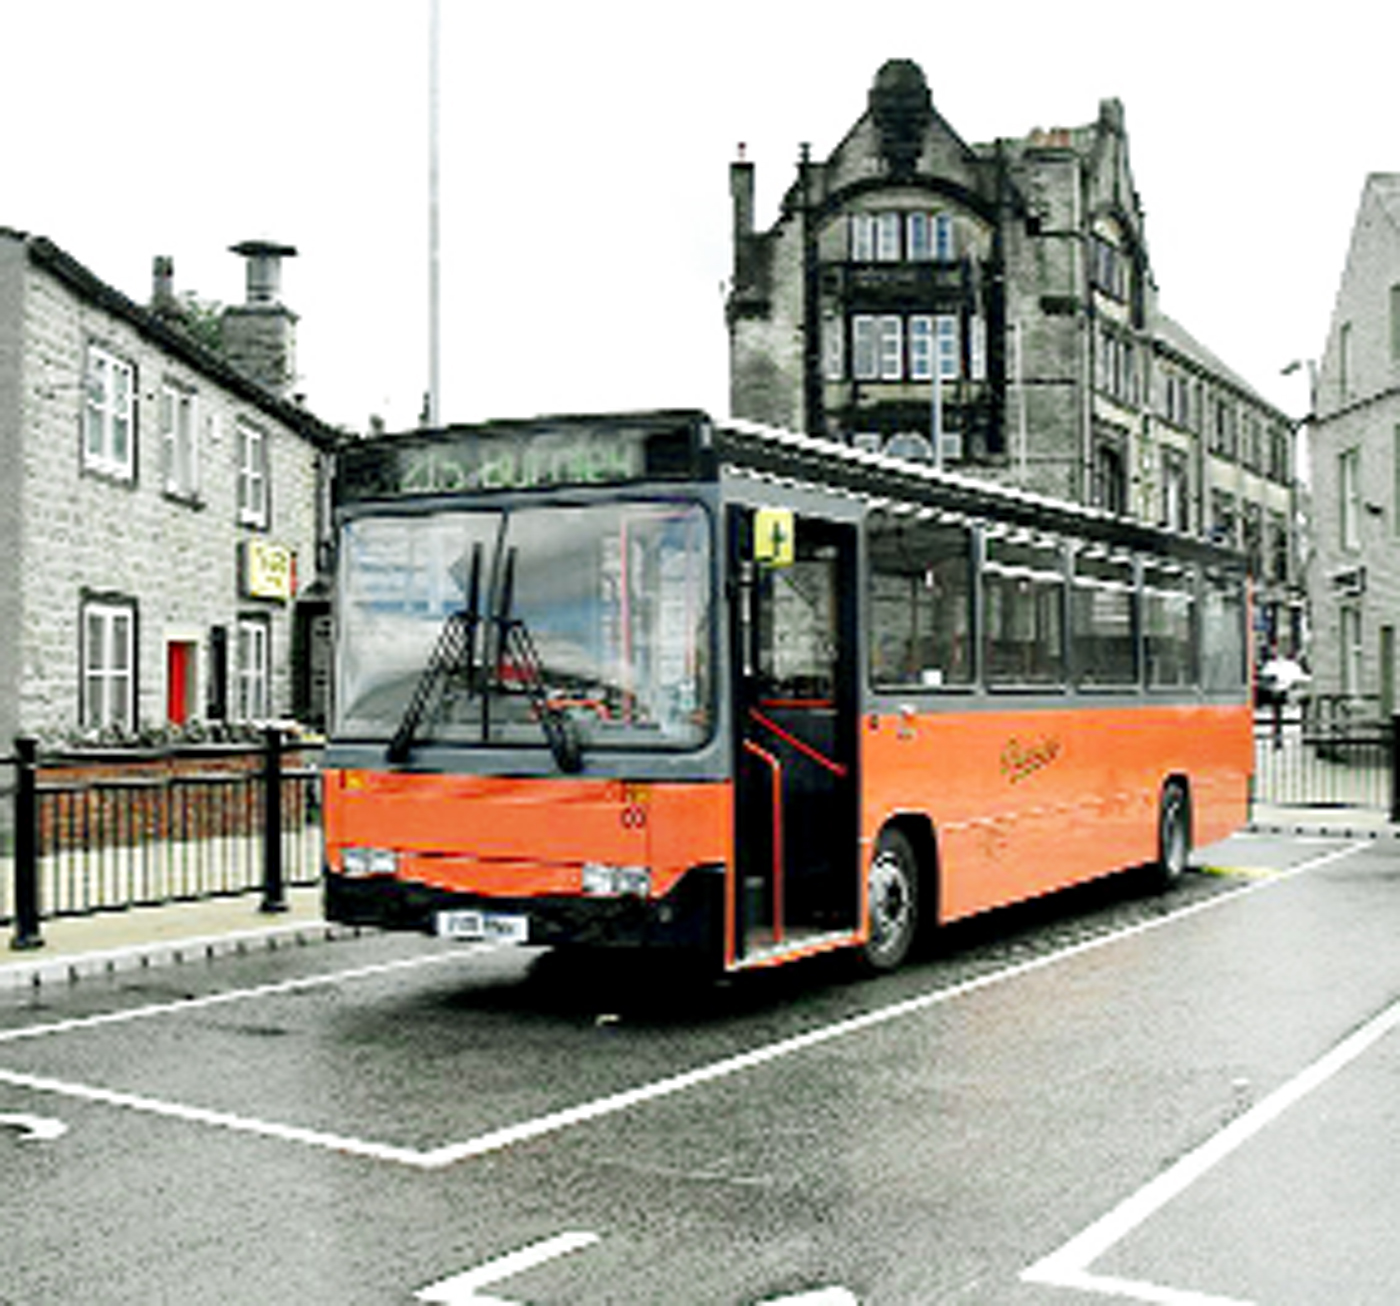 Pennine Motors' orange and black buses have been a familiar sight on roads for many decades